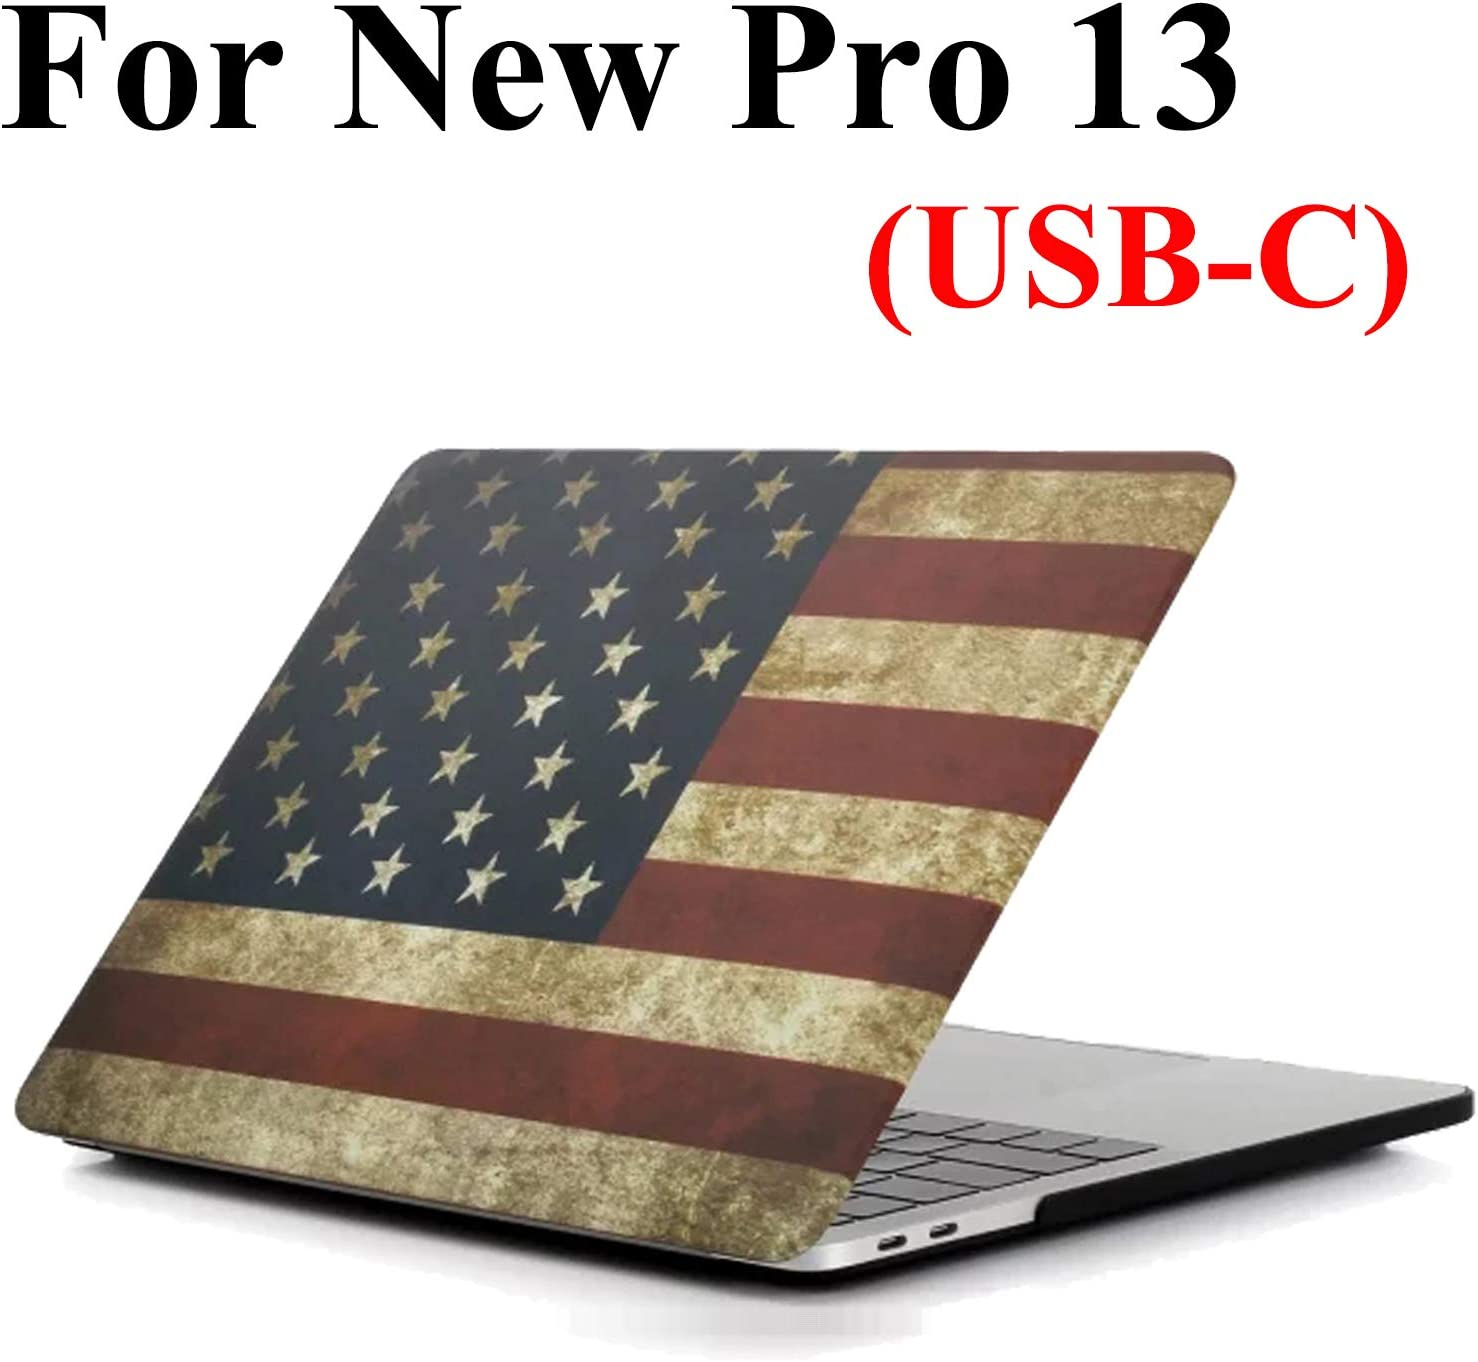 MacBook Pro 13 inch Case 2020/2019/2018/2017/2016 Model A2251/A2289/A2159/A1989/A1706/A1708, iZi Way Plastic Hard Case Shell Cover for Mac Pro 13 Retina with/without Touch Bar, Retro American Flag